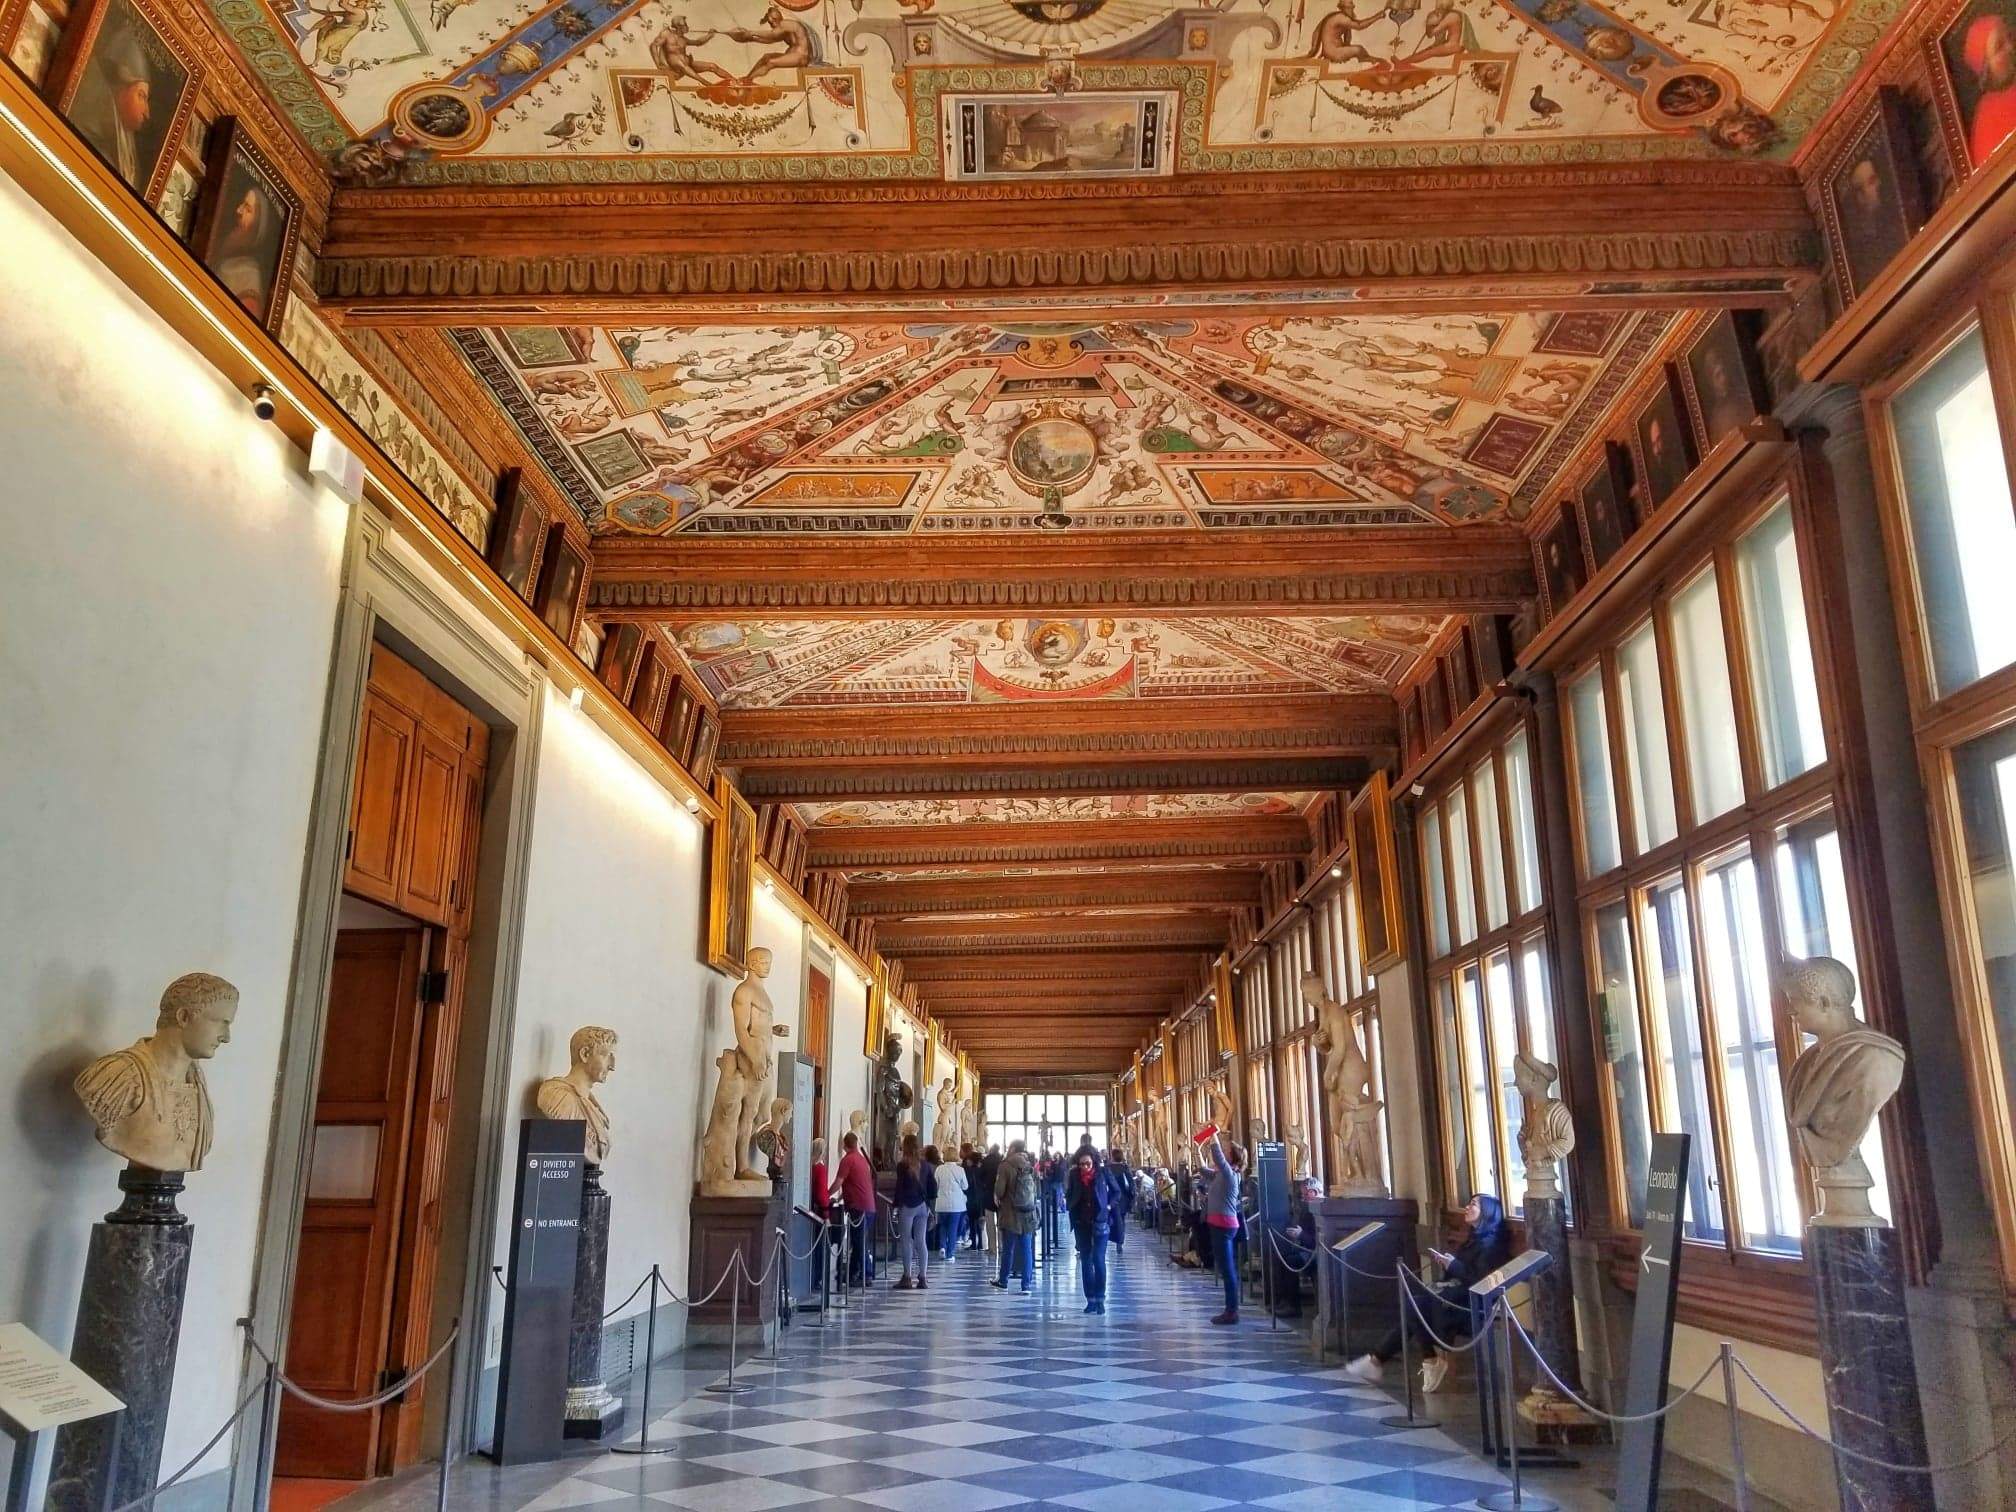 Florence itinerary 2 days - Uffizi Gallery